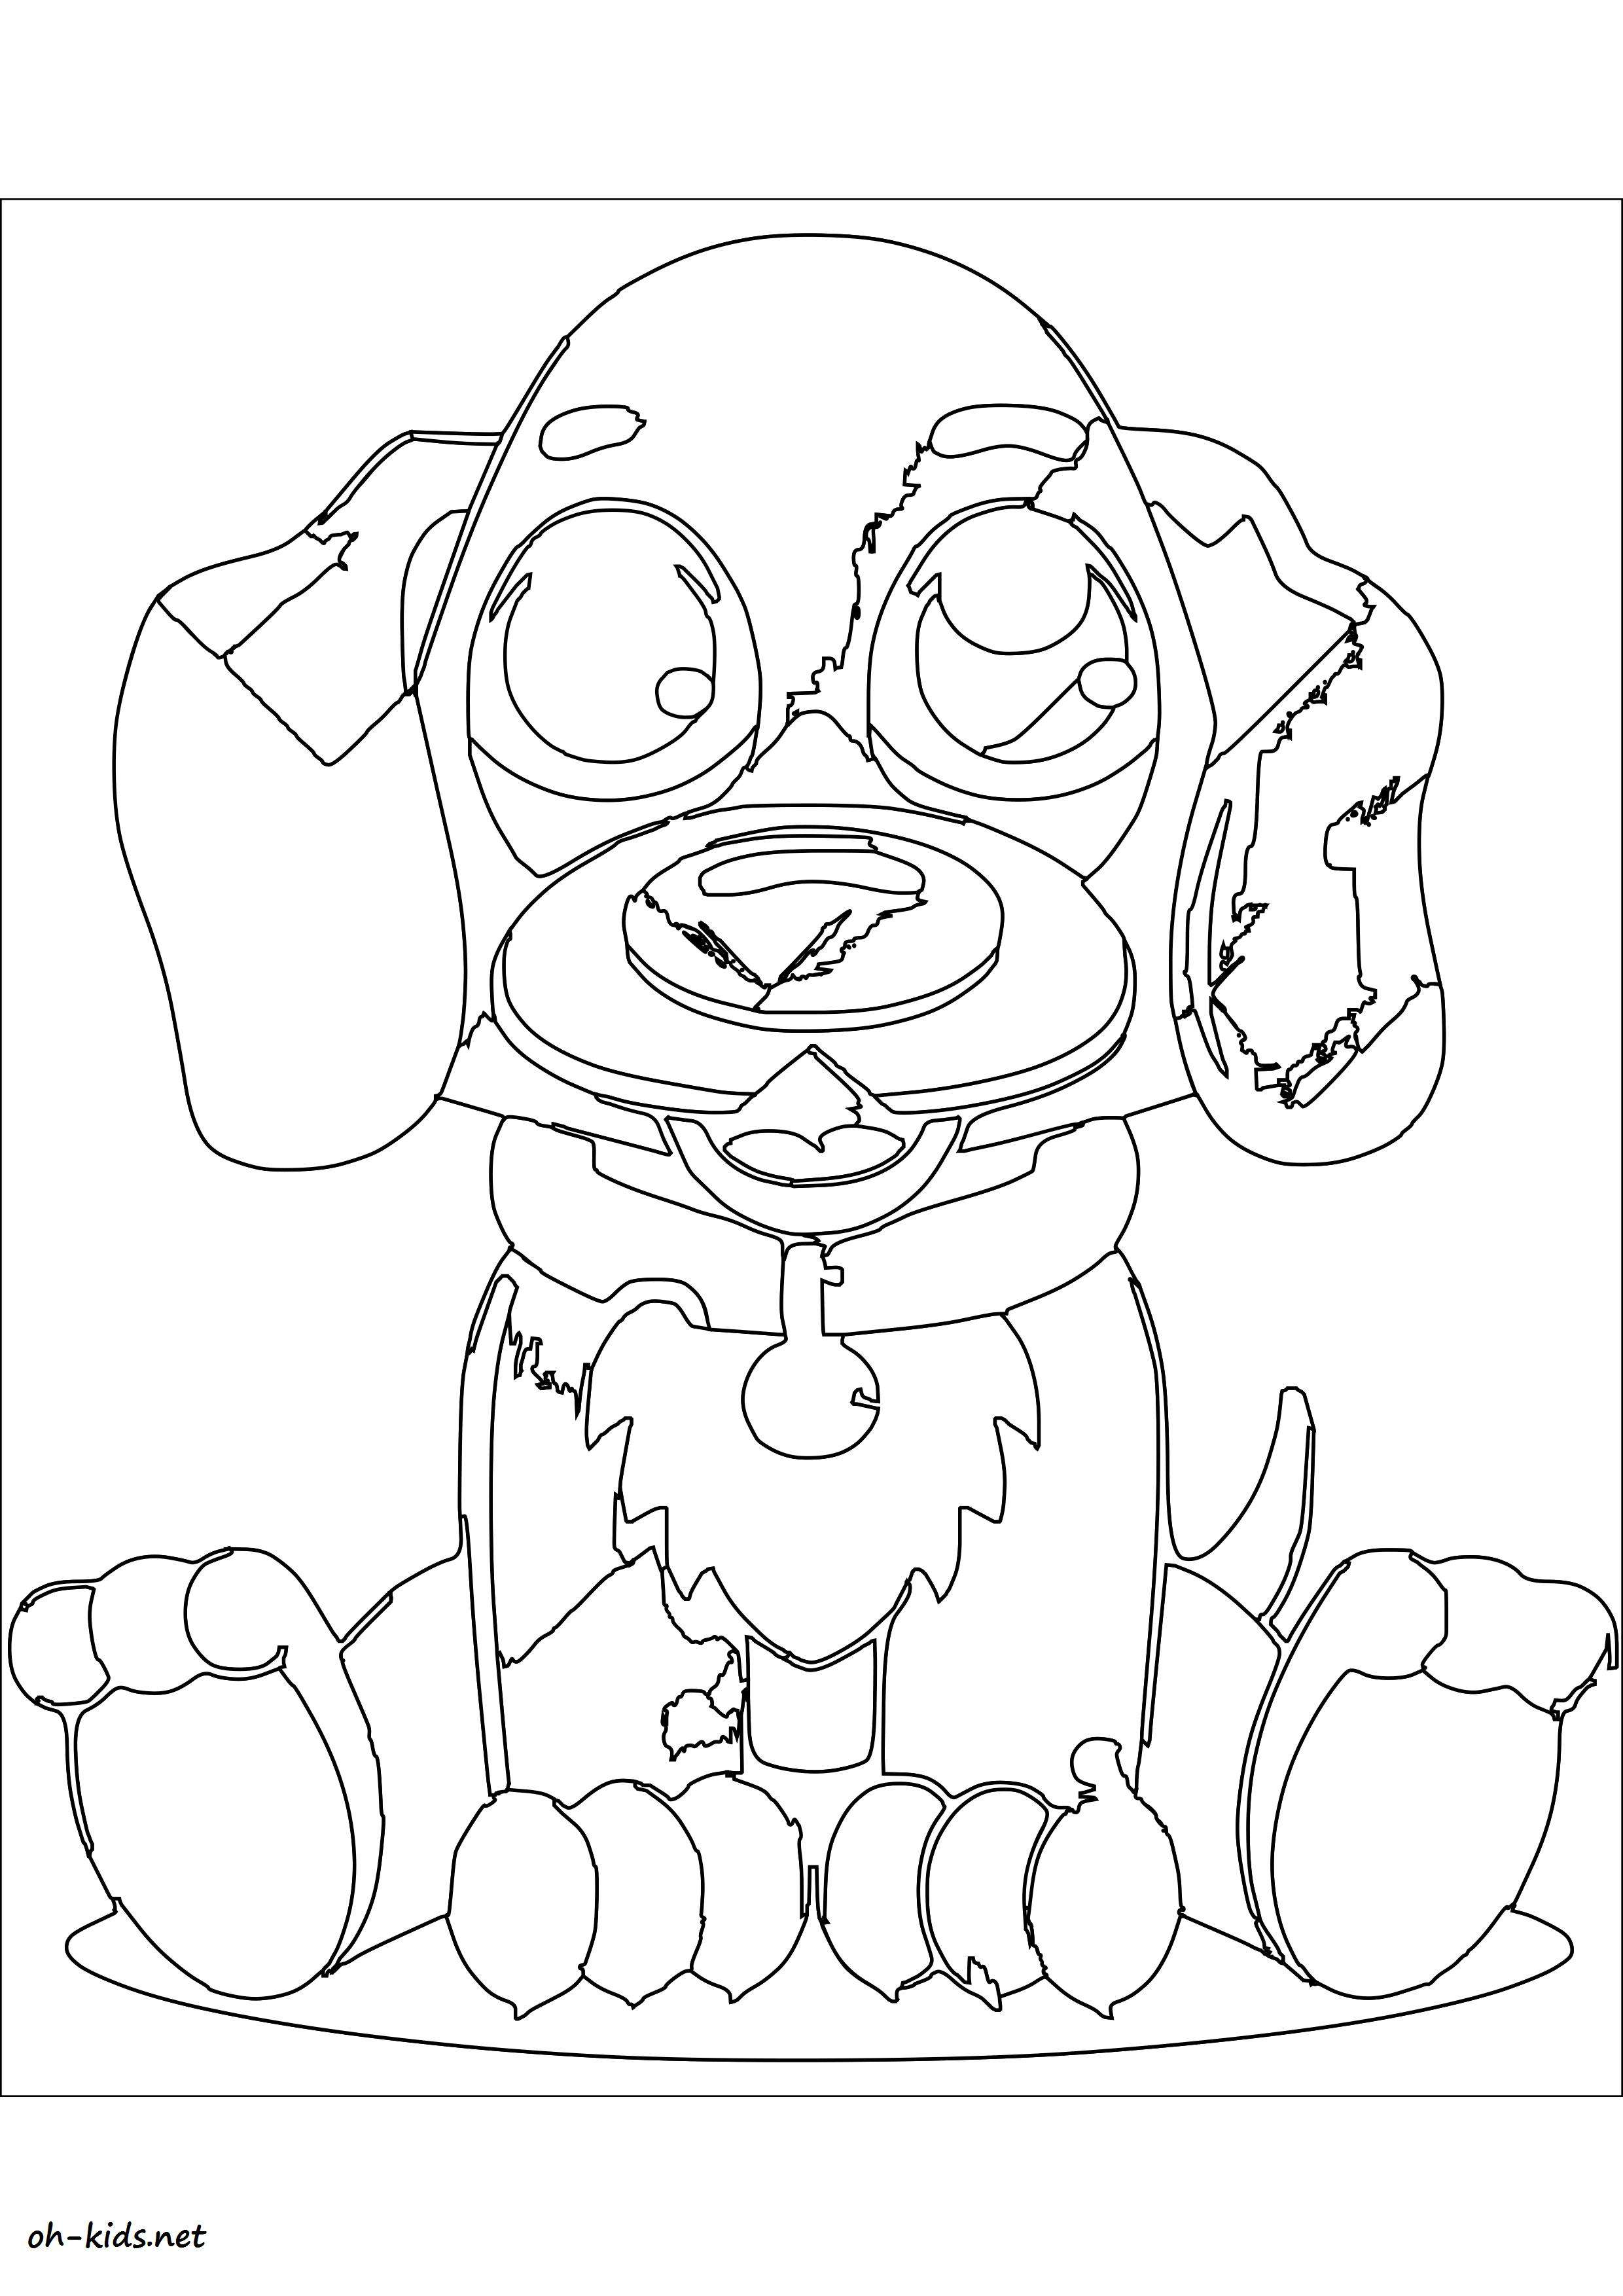 Coloriage chiot oh kids fr - Chiot coloriage ...